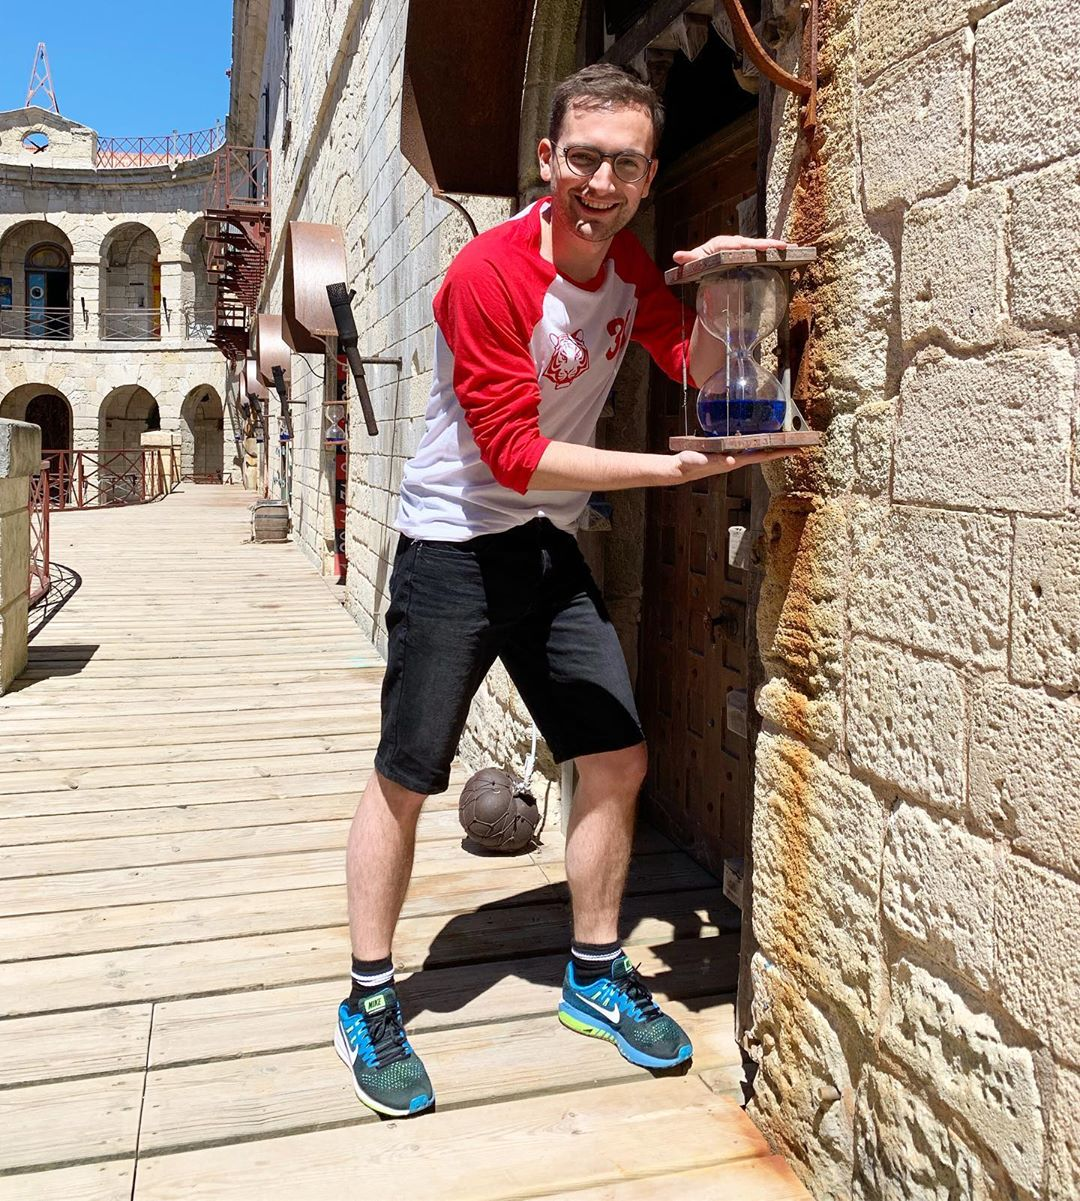 Photos des tournages de Fort Boyard 2019 (production + candidats) - Page 25 60411310